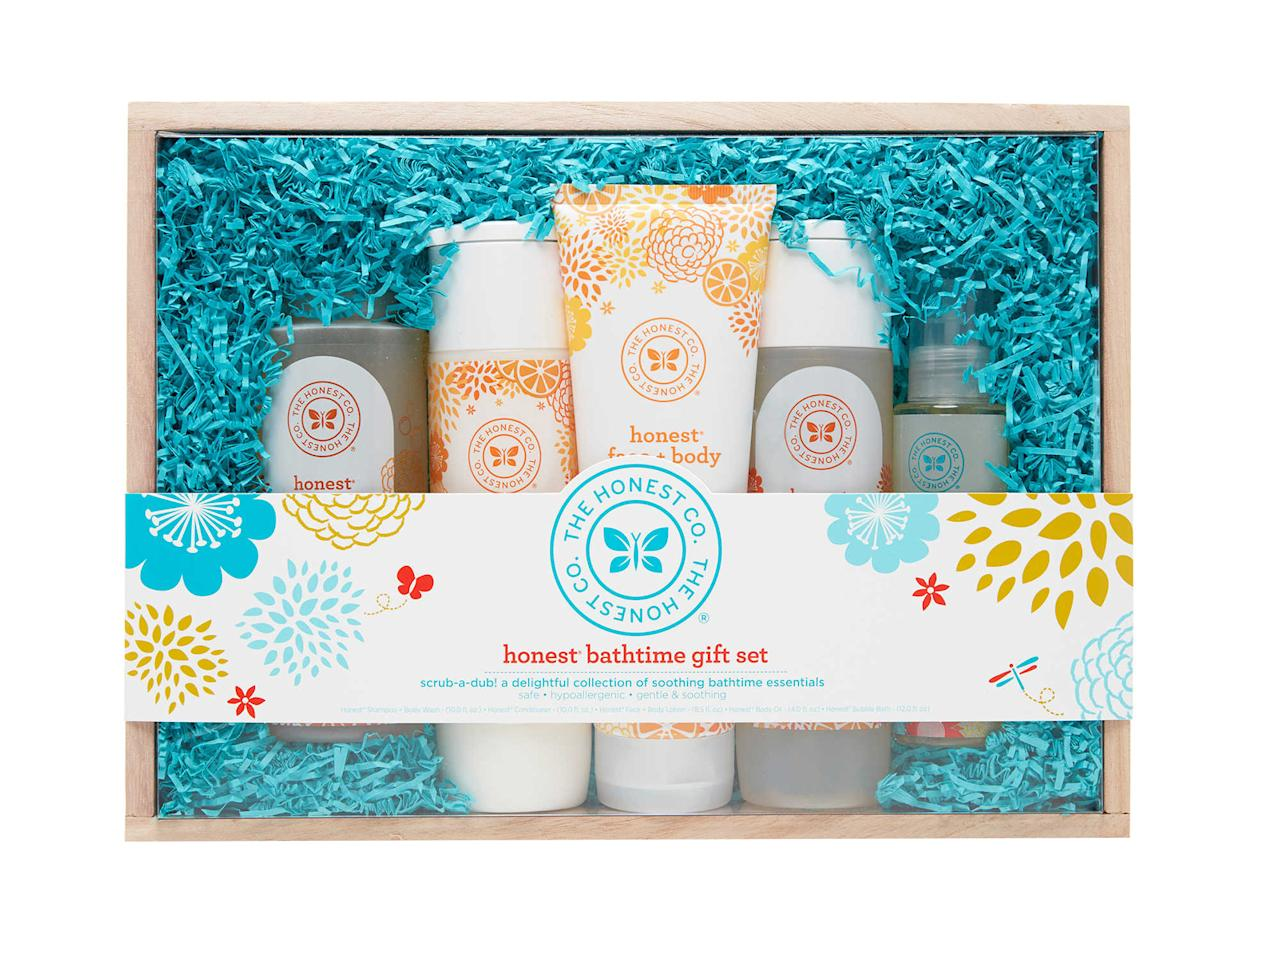 """<p>""""I am obsessed with all Honest products! I love their diapers, wipes, hand sanitizer spray, organic healing balm, sunscreen, and especially their bath products. They aren't made with harsh chemicals and they are safe and super gentle (perfect for a new baby!).""""</p><p>Buy it <a rel=""""nofollow"""" href=""""https://www.buybuybaby.com/store/product/honest-bath-time-gift-set/1020207427"""">here</a> for $50.</p>"""